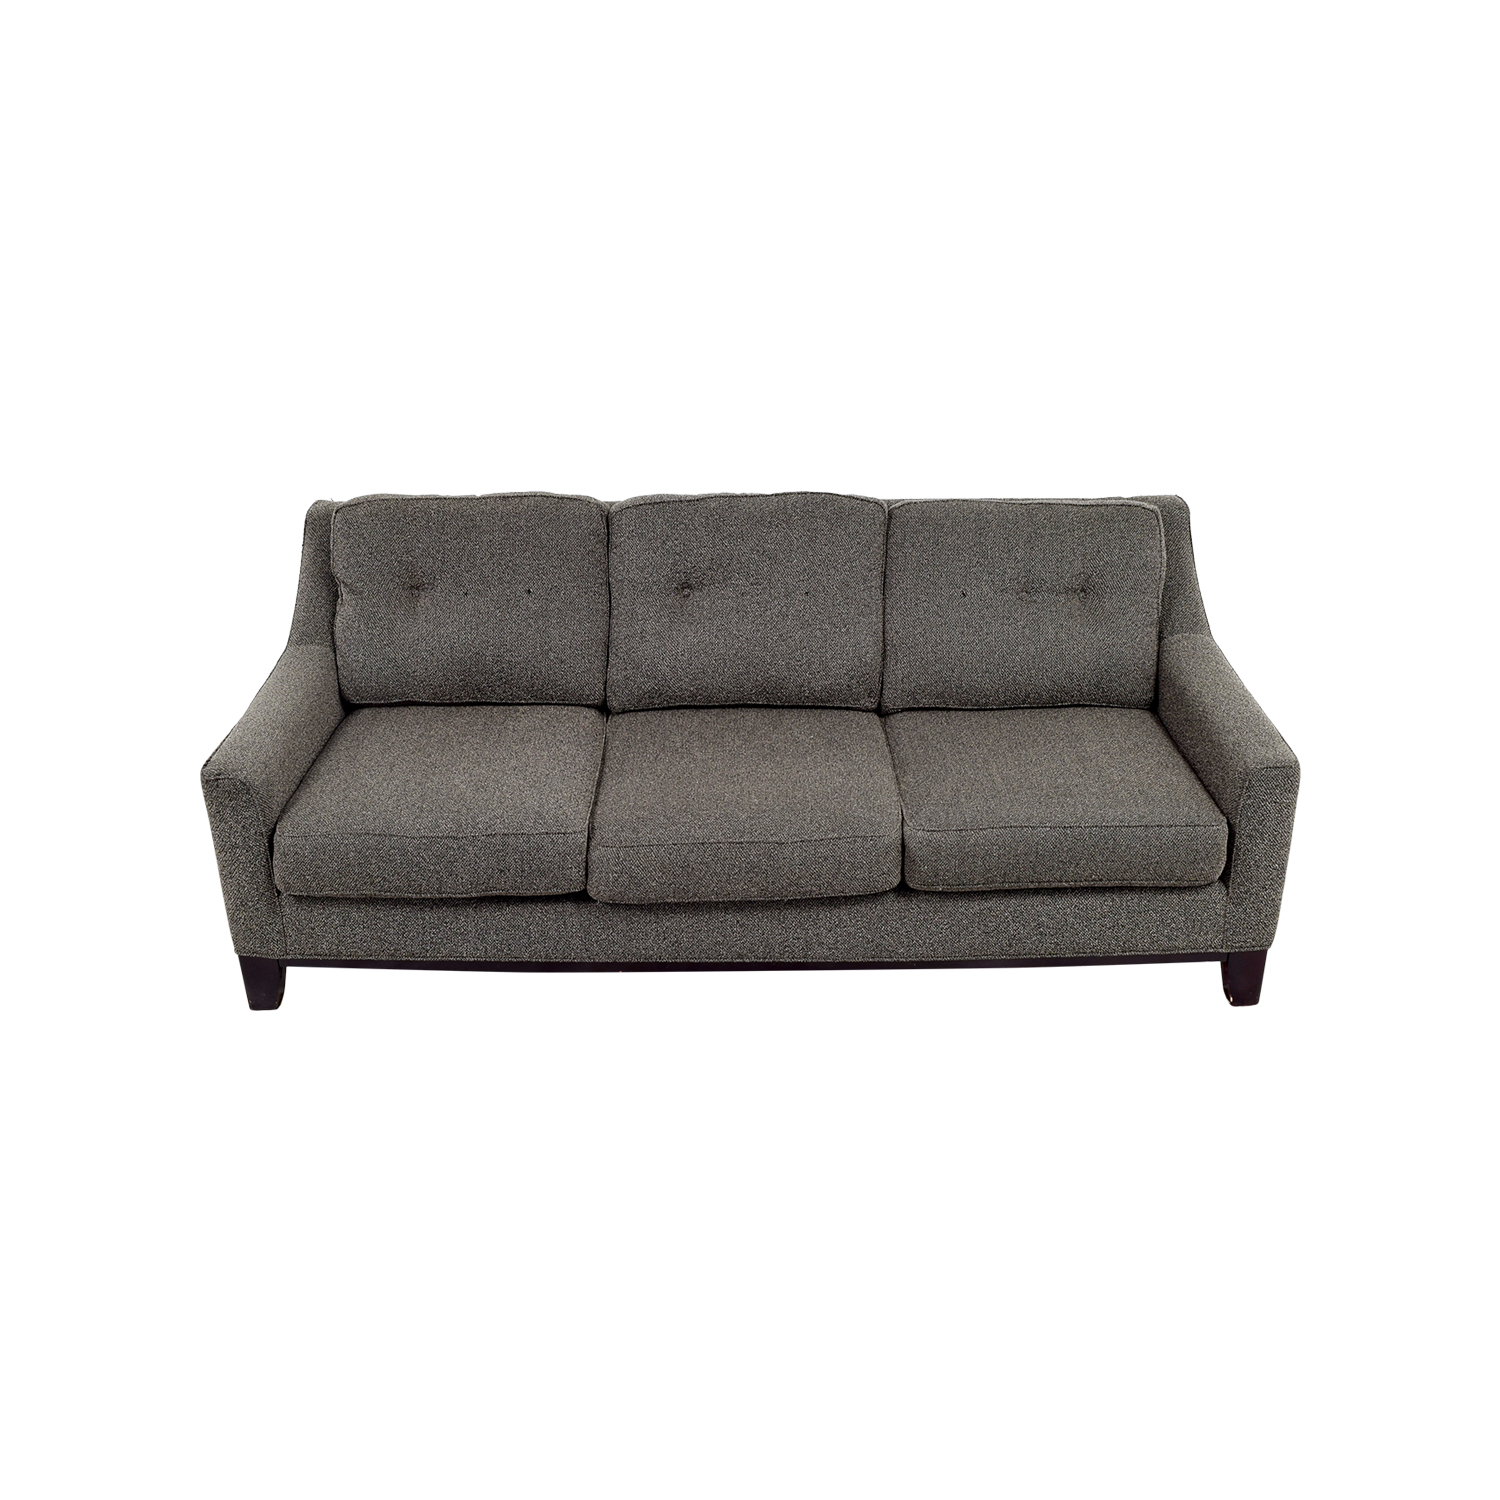 Attrayant ... Cindy Crawford Home CIndy Crawford Home Grey Woven Fabric 3 Seat Sofa  Discount ...